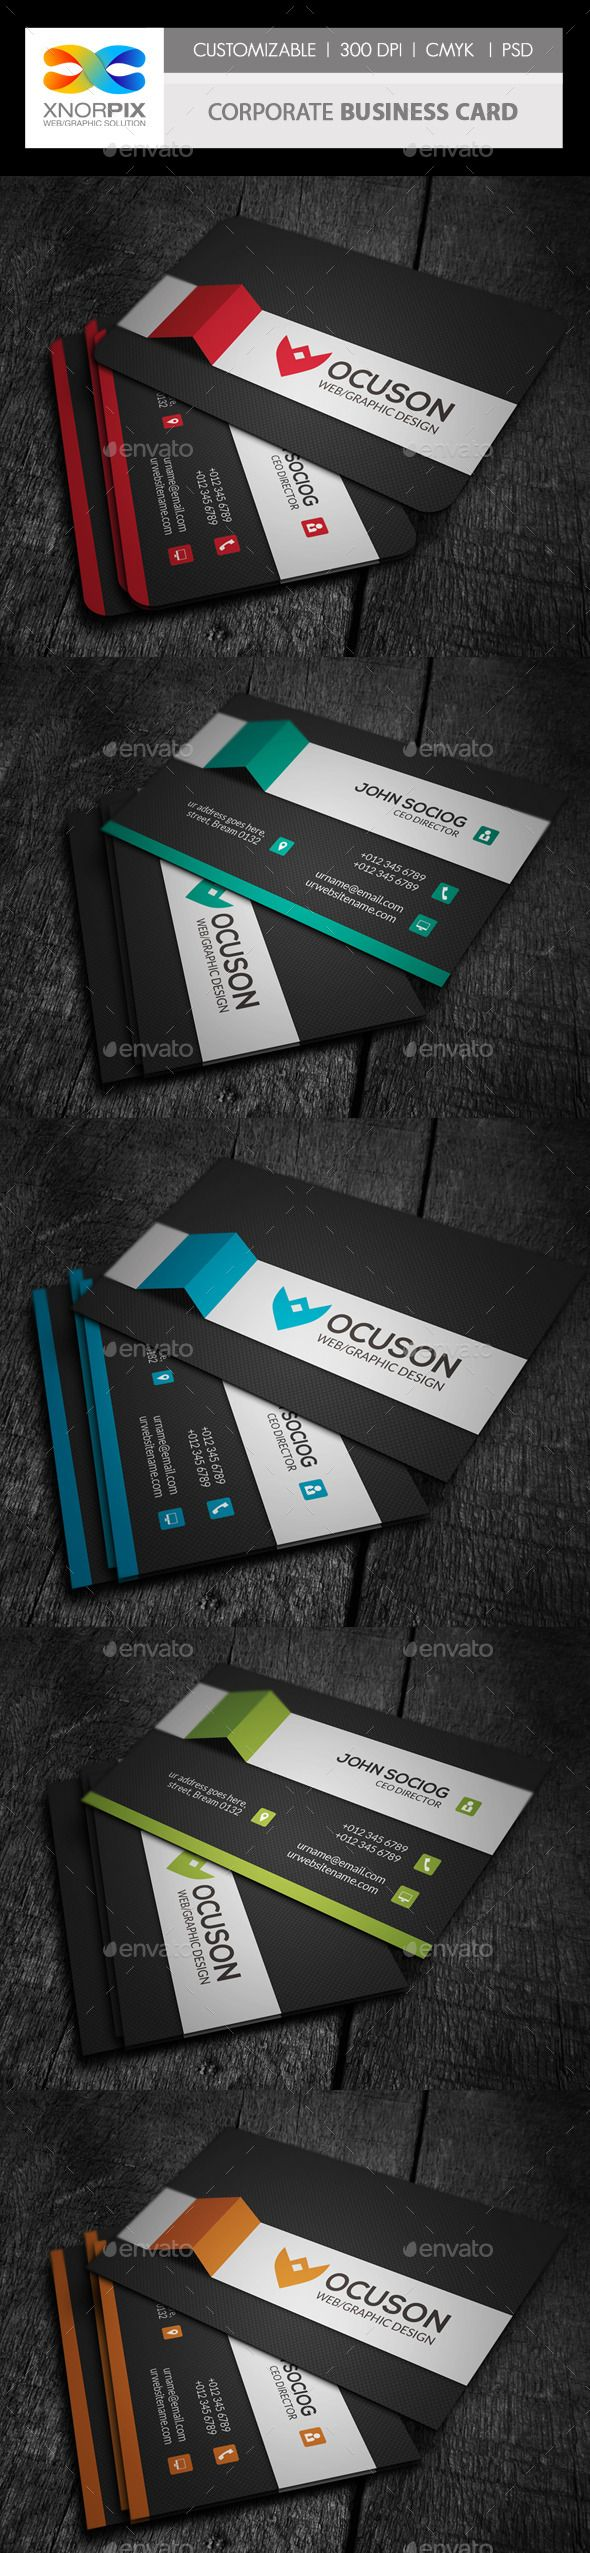 The 160 best business cards images on pinterest business card corporate business card reheart Image collections